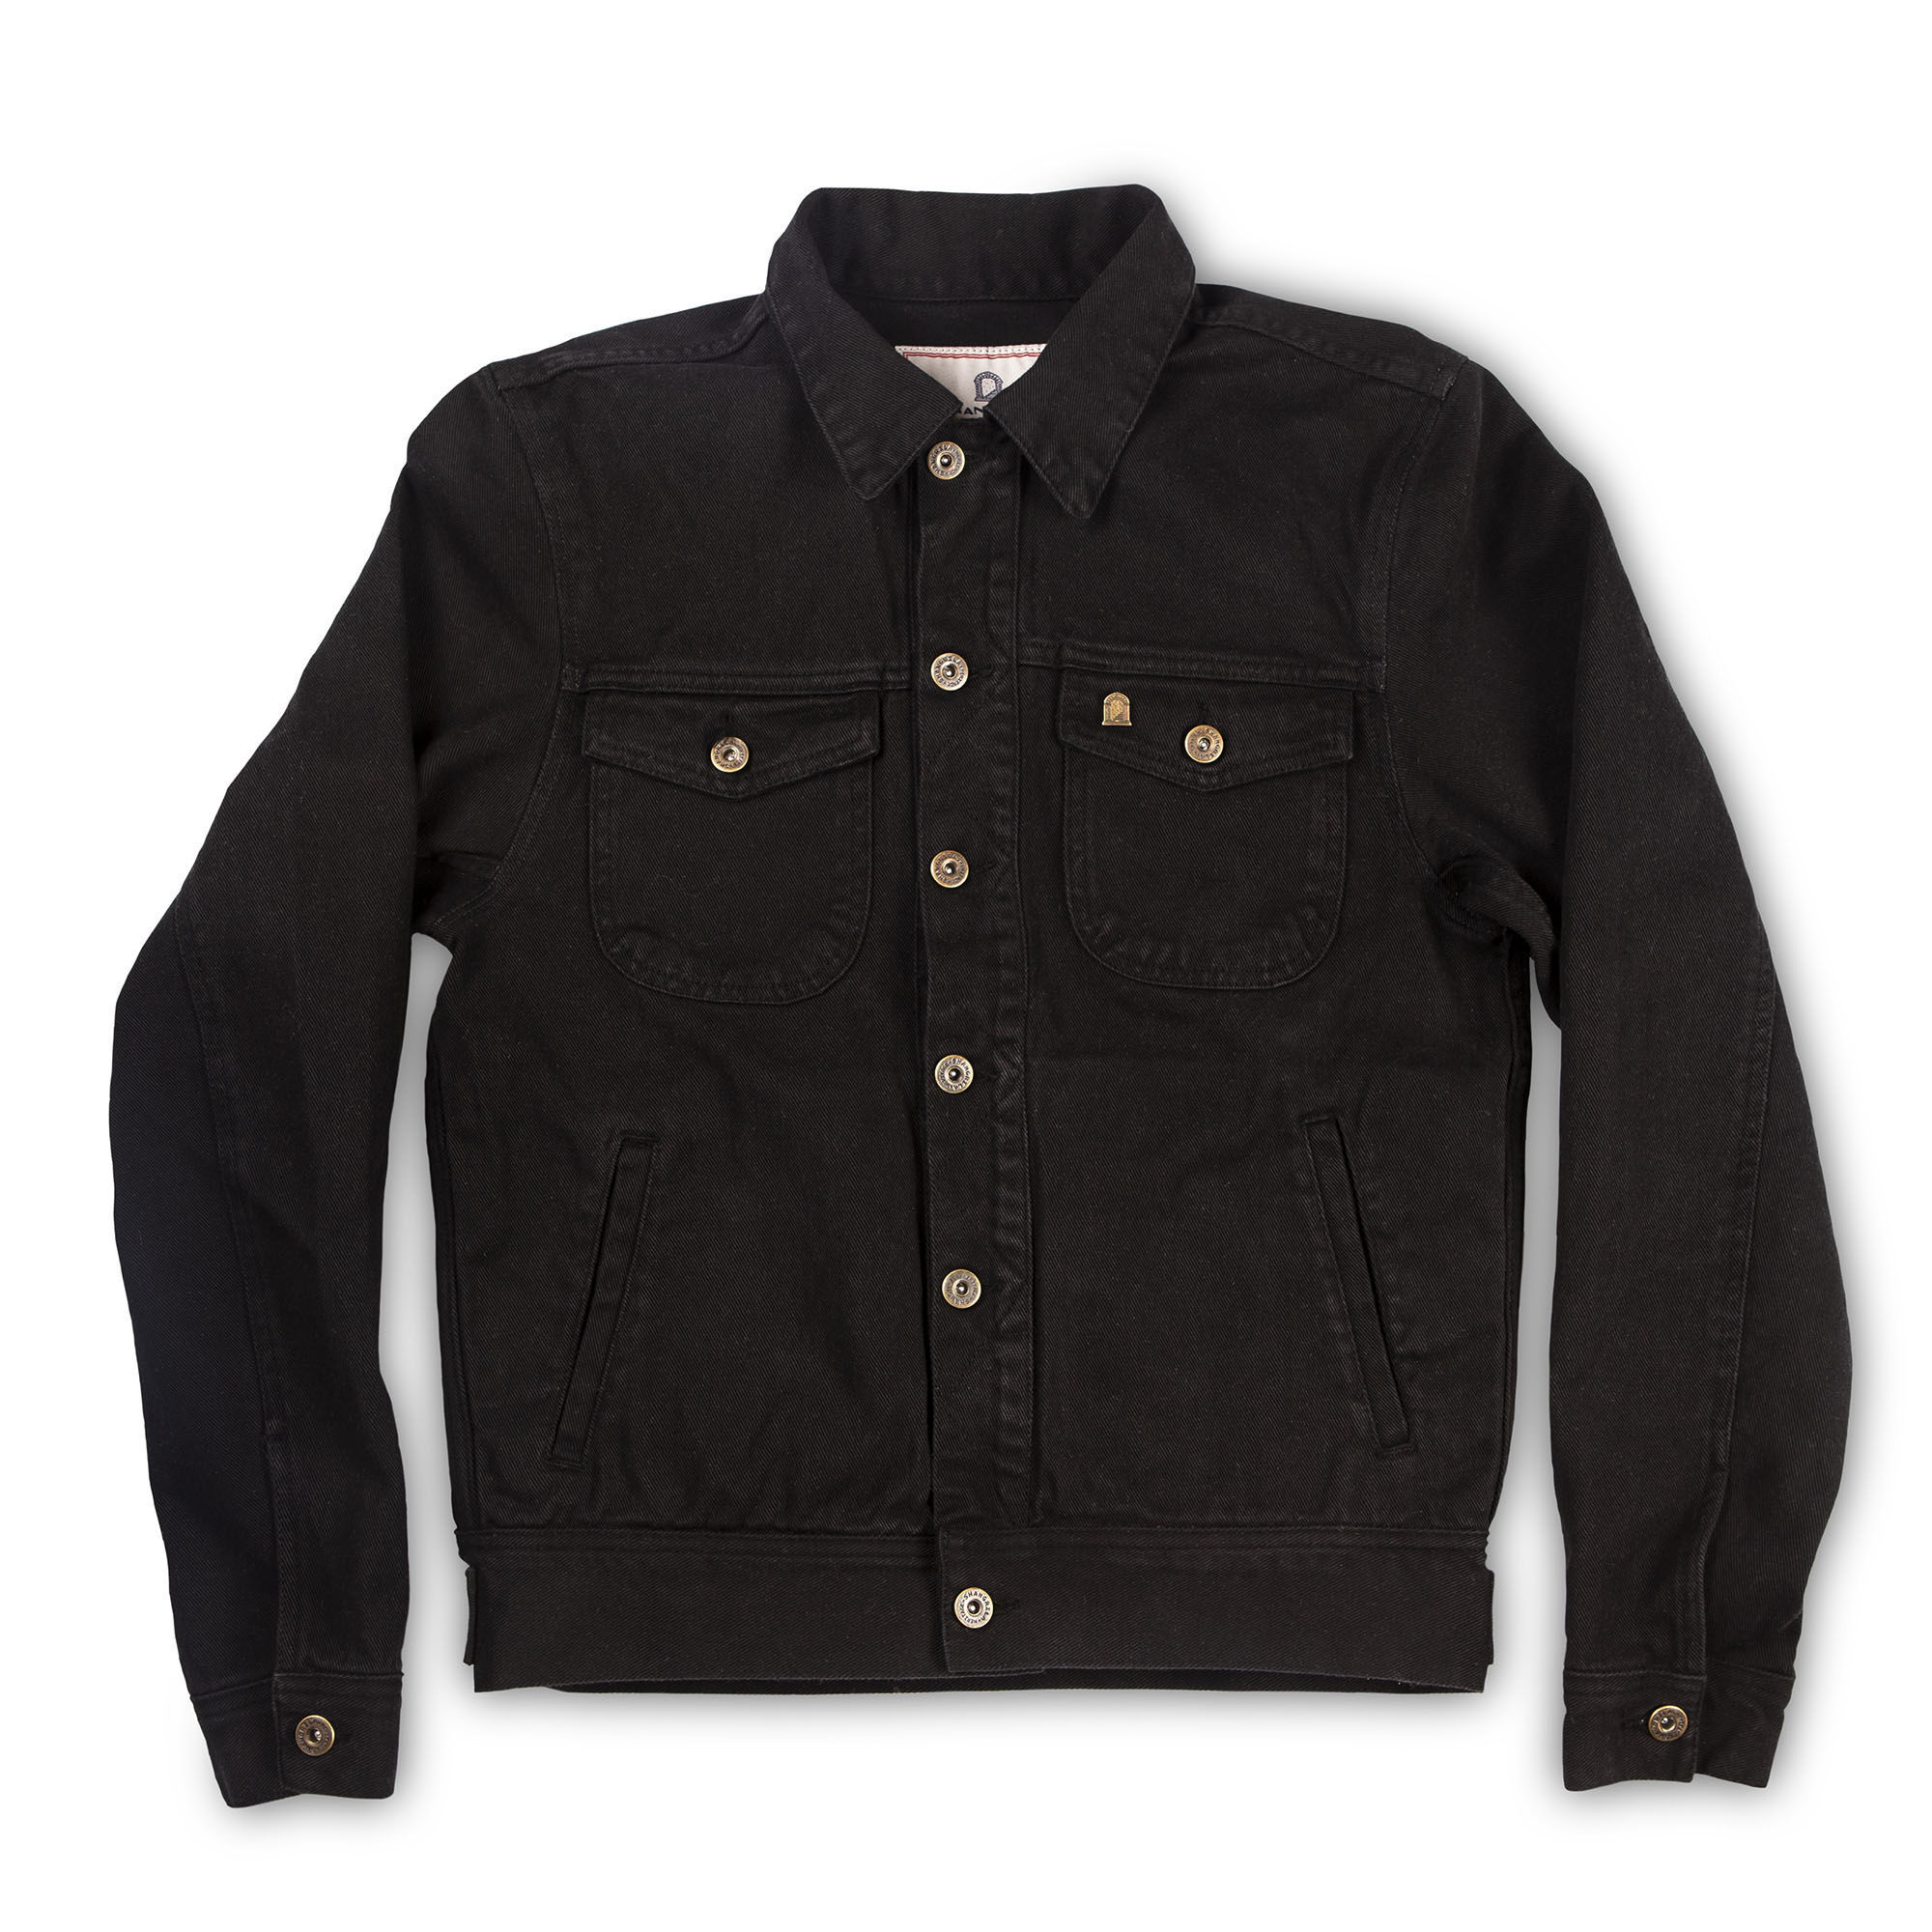 shangri-la-heritage-new-single-rider-black-canvas-jacket-still-life-front